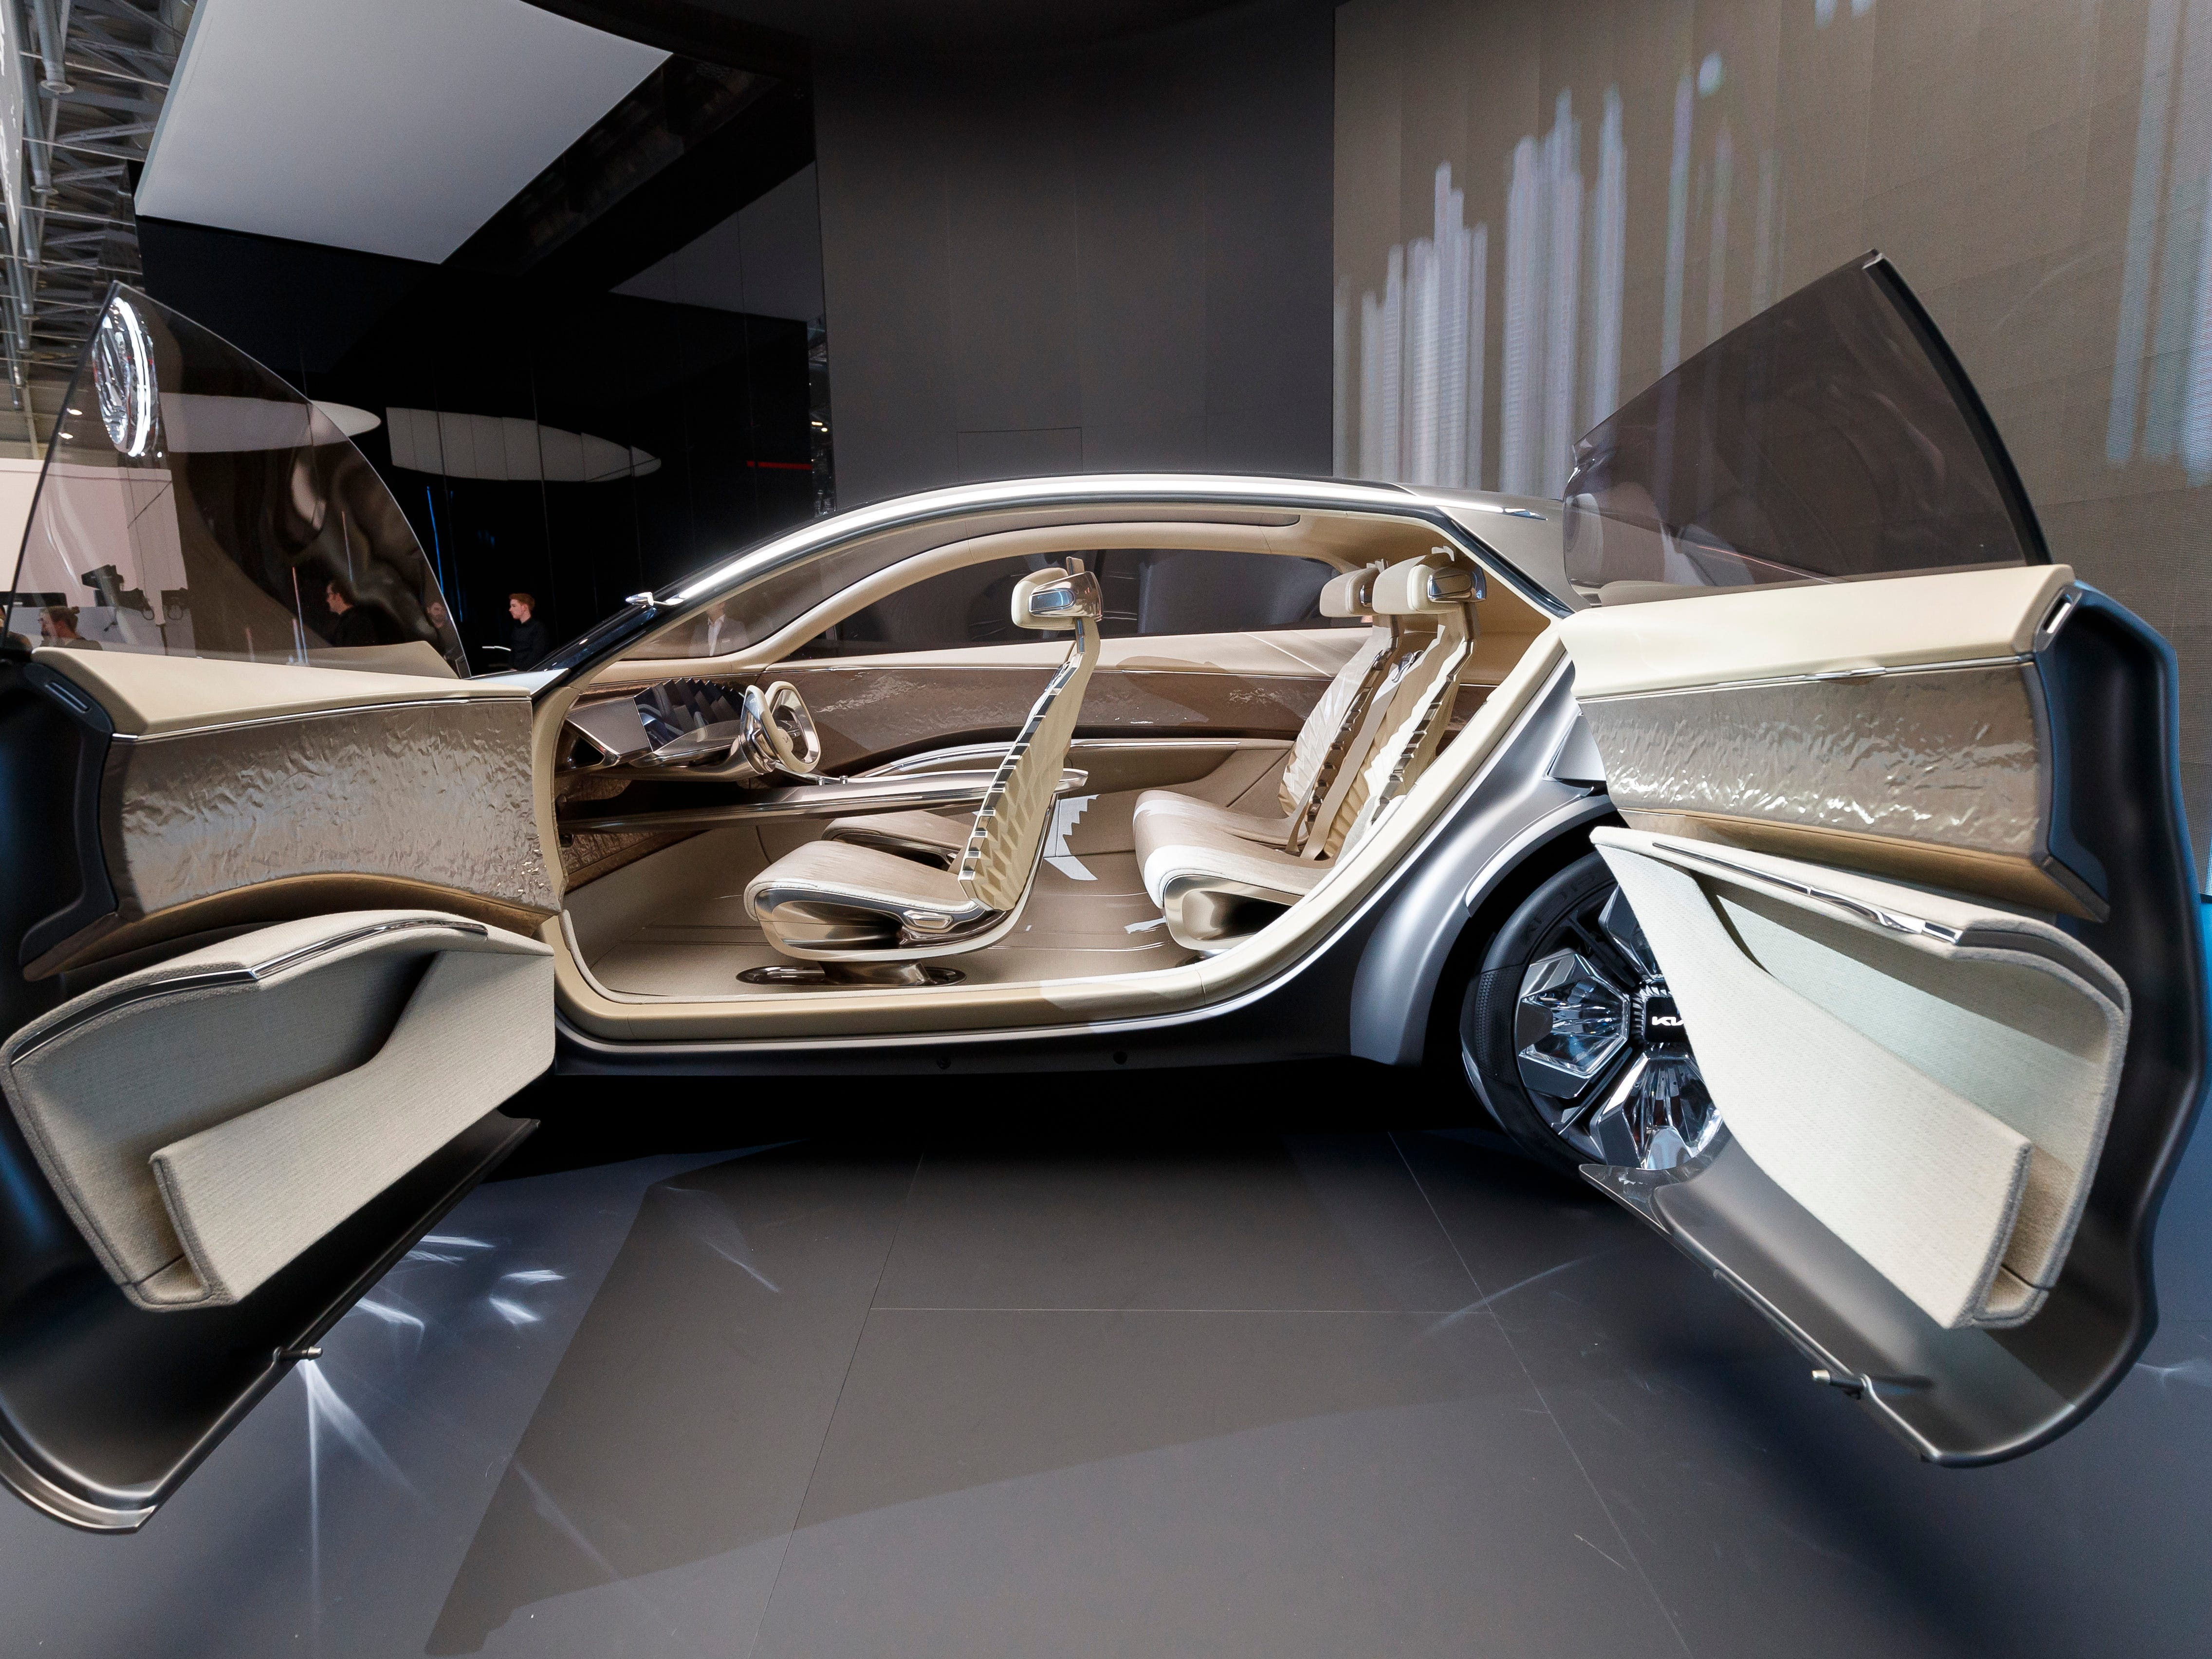 """The doors of the new Kia """"Imagin"""" concept car are opened during the press day at the 89th Geneva International Motor Show."""